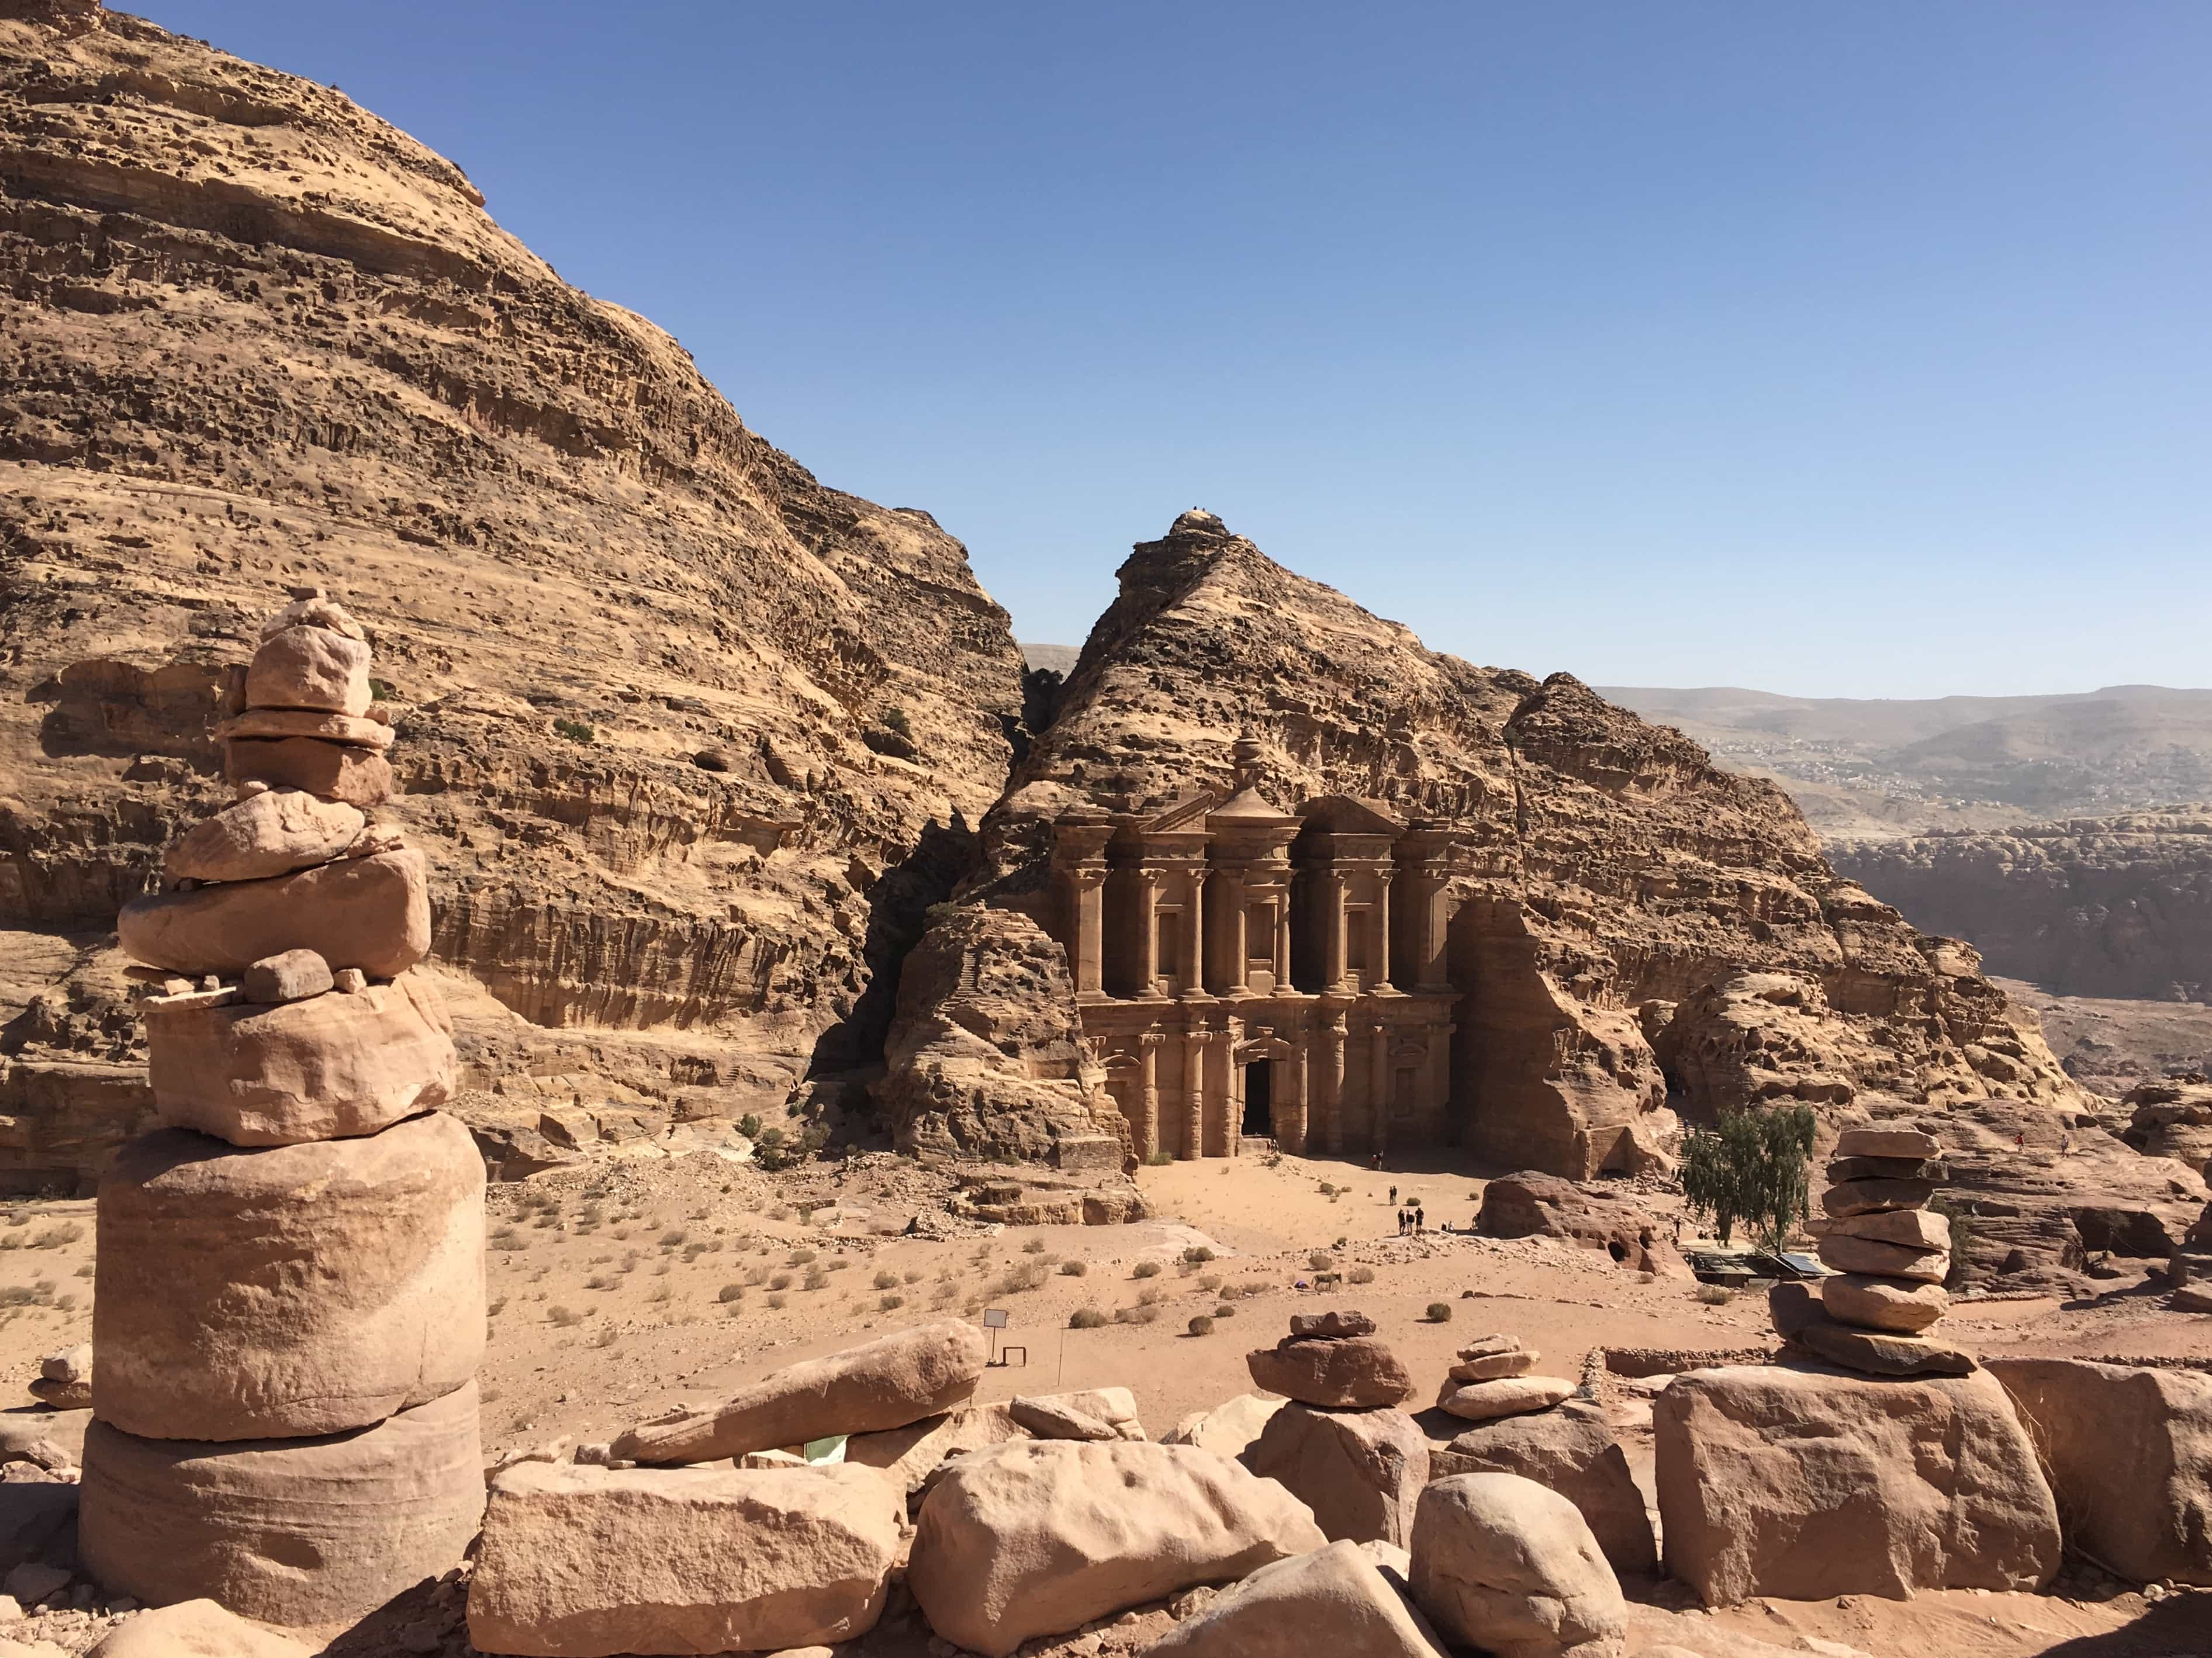 Never Been to the Middle East? Head to Jordan